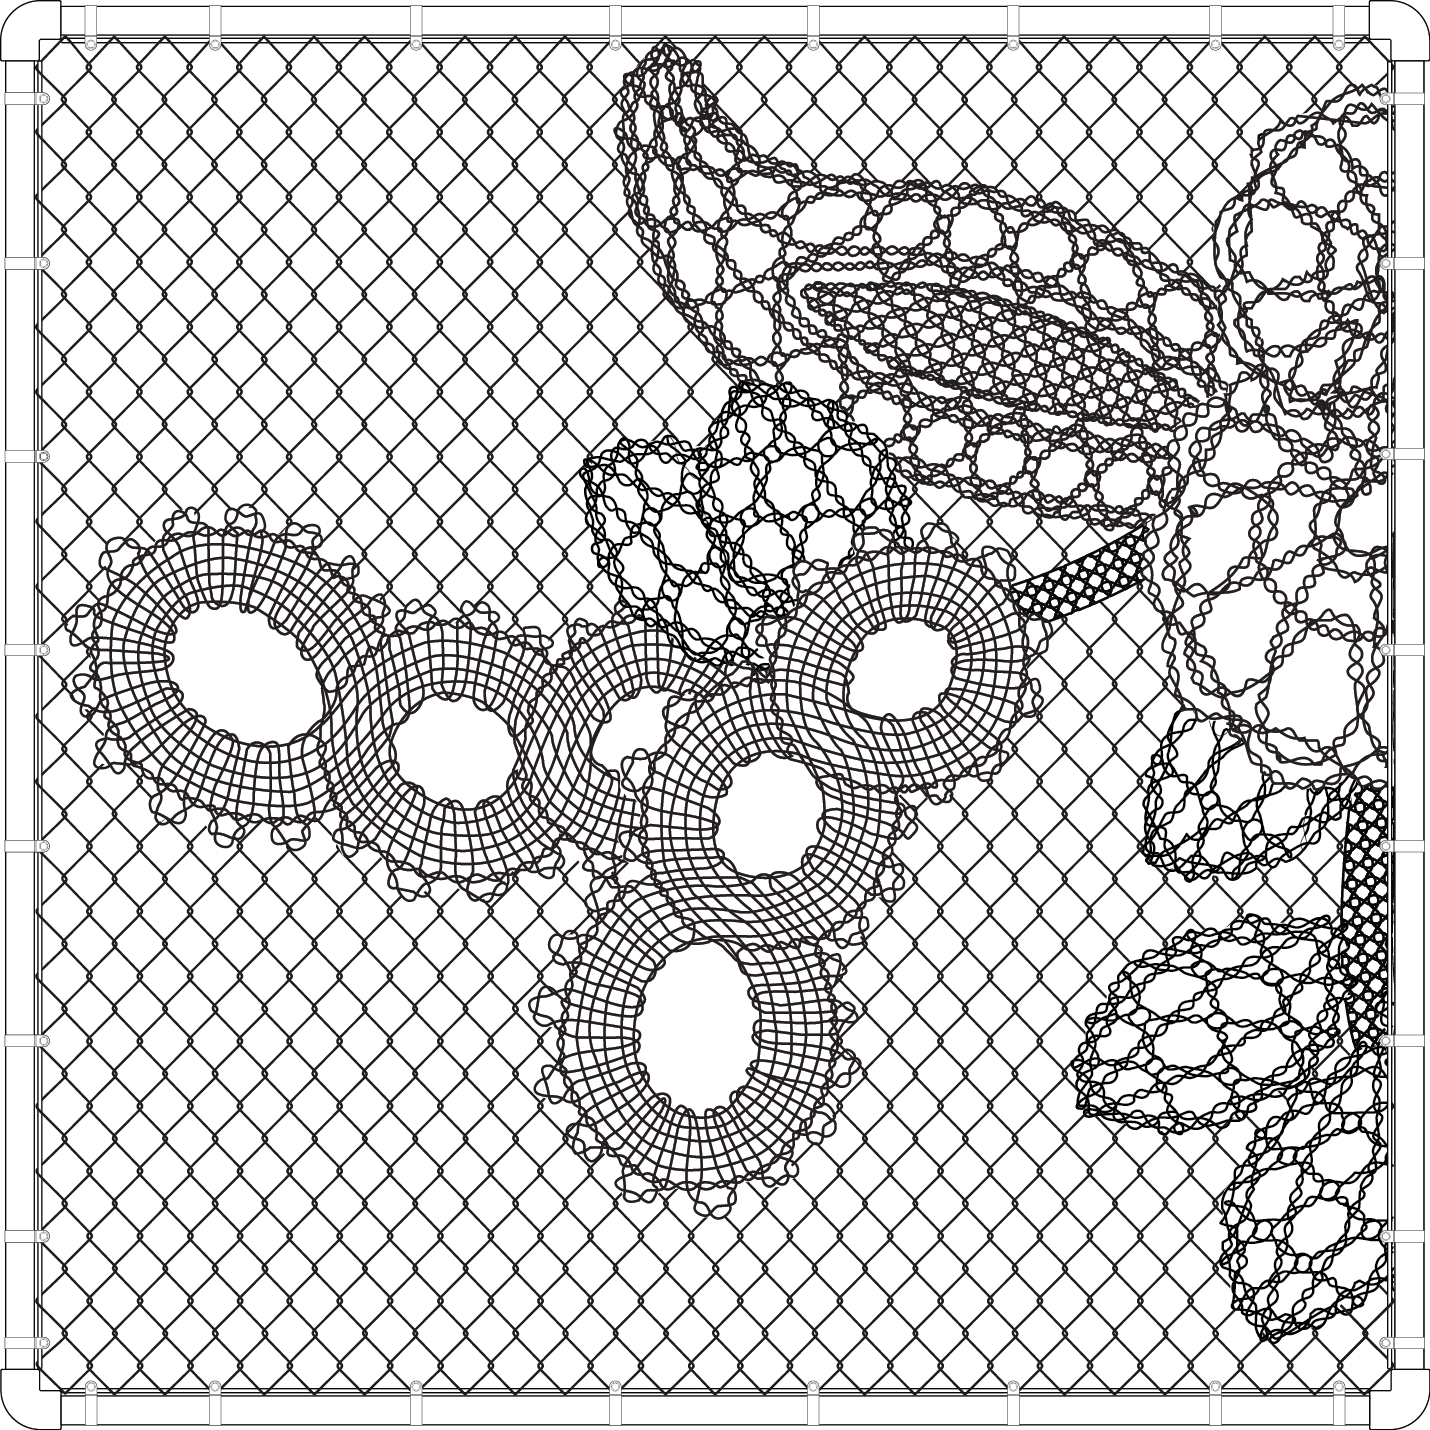 1430x1430 Image Result For How To Draw Lace Chain Link Fence Accessories